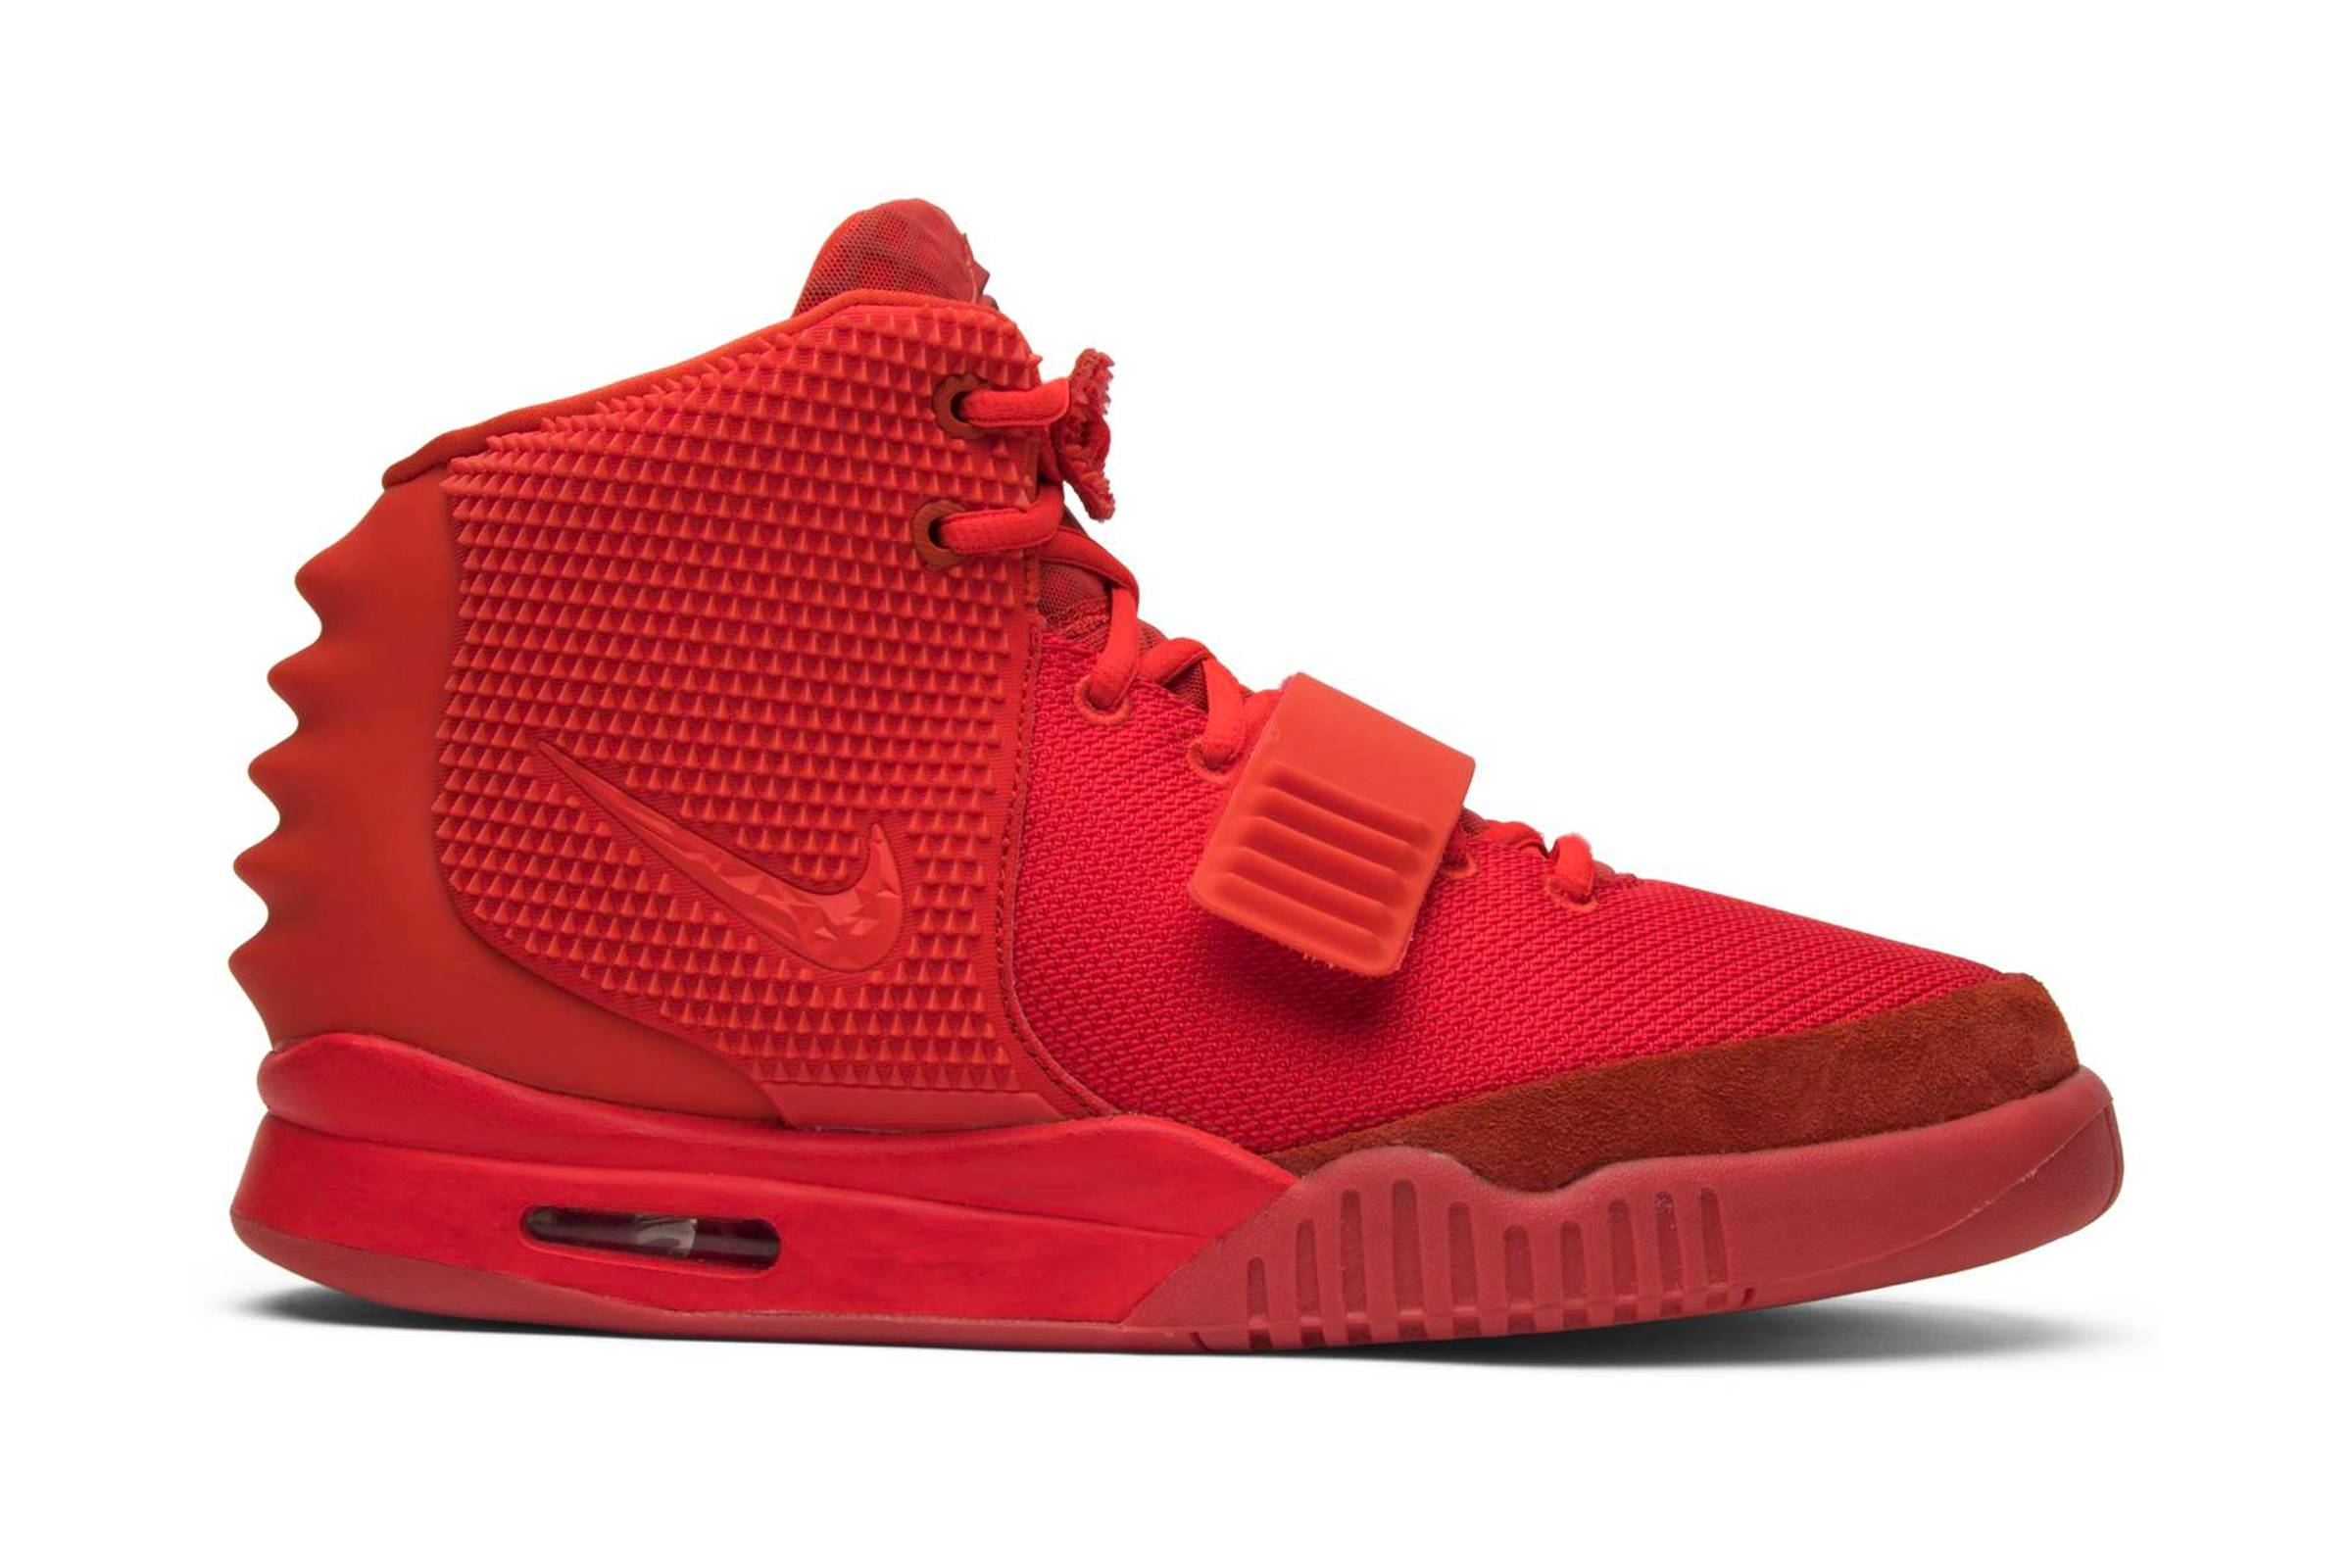 """Kanye West x Nike Air Yeezy II """"Red October"""""""